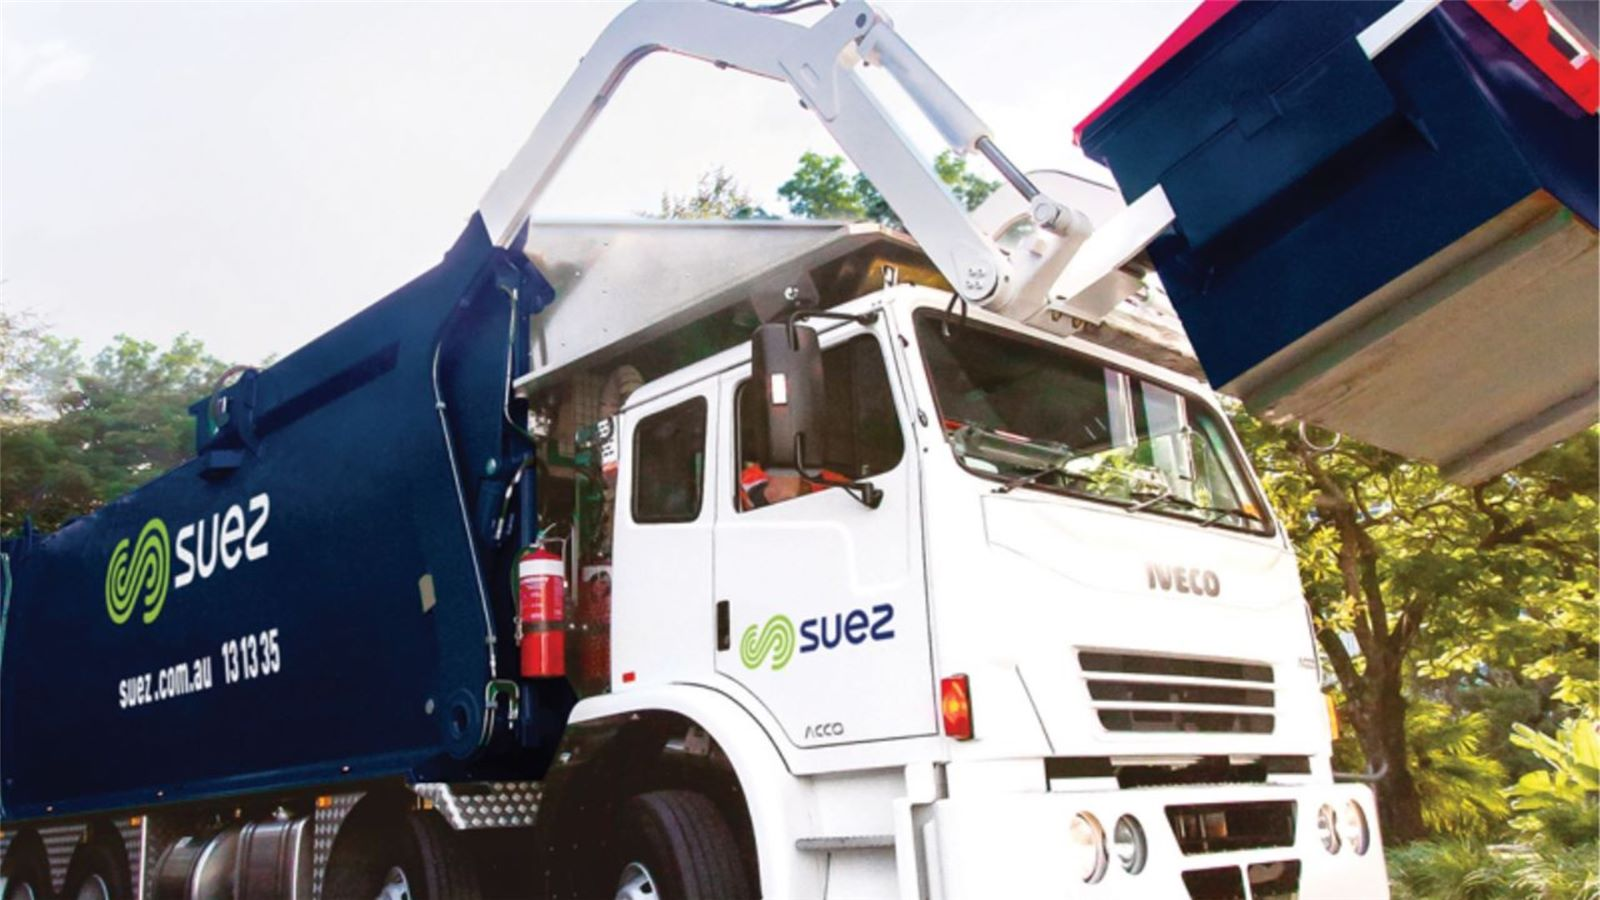 SUEZ businesses total waste collection solutions 2000x1125